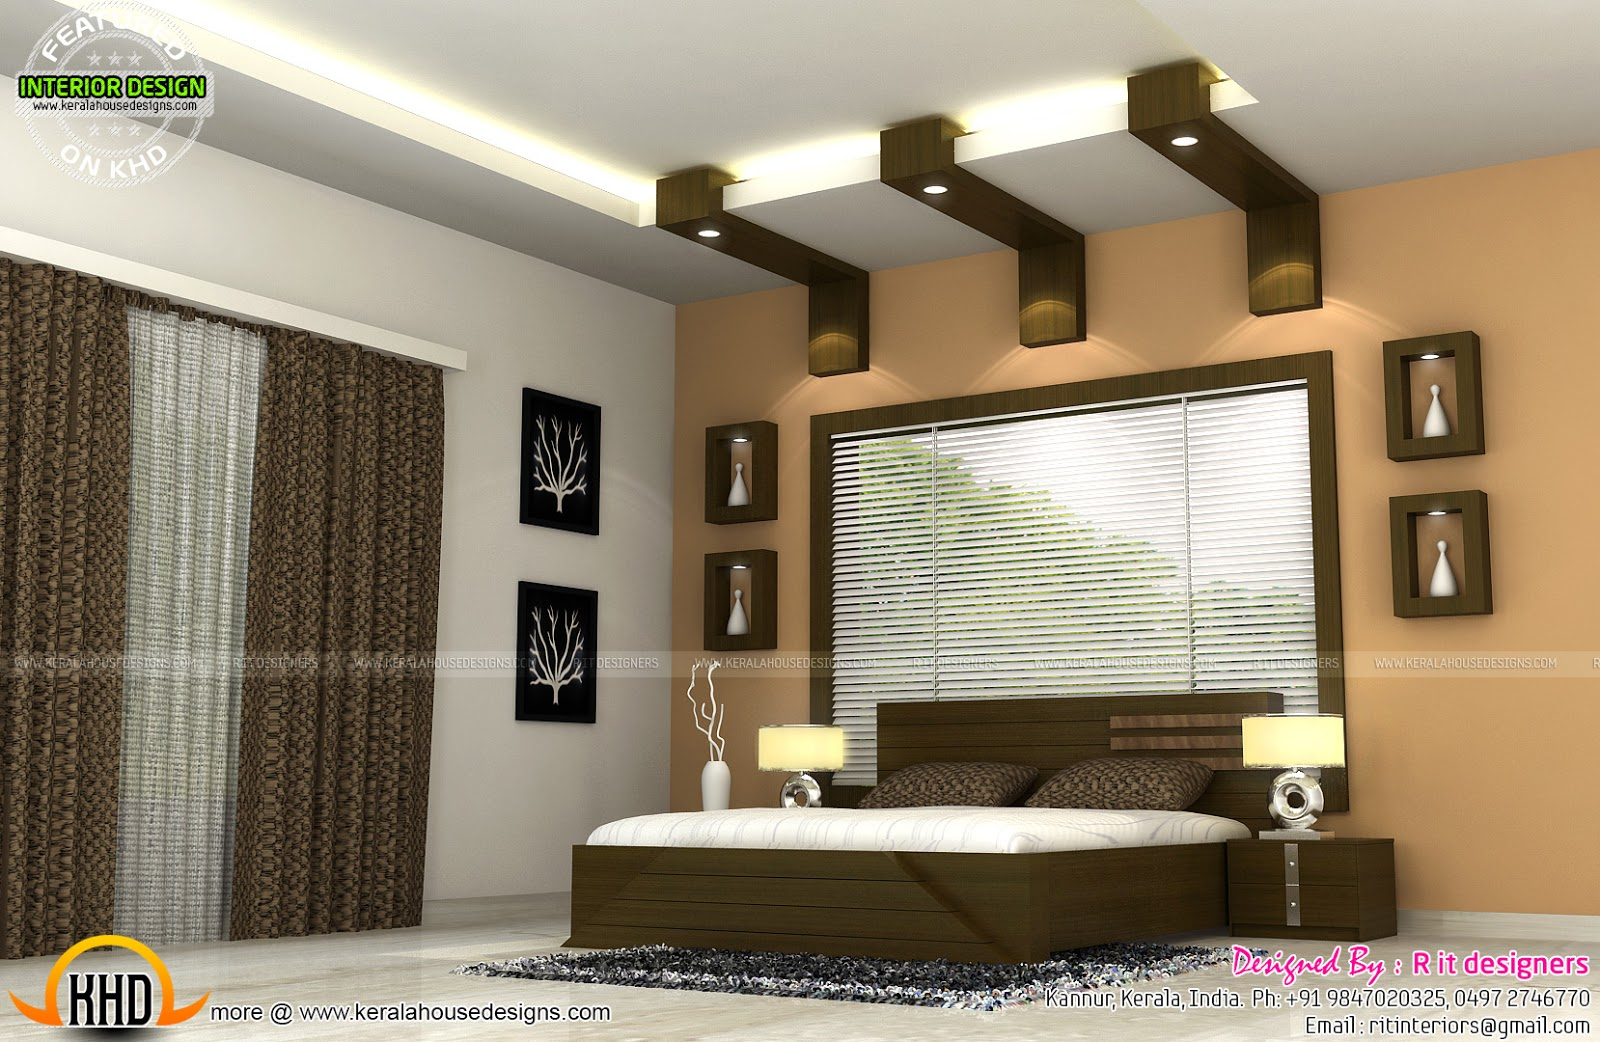 Interiors of bedrooms and kitchen kerala home design and for Interior designs for home